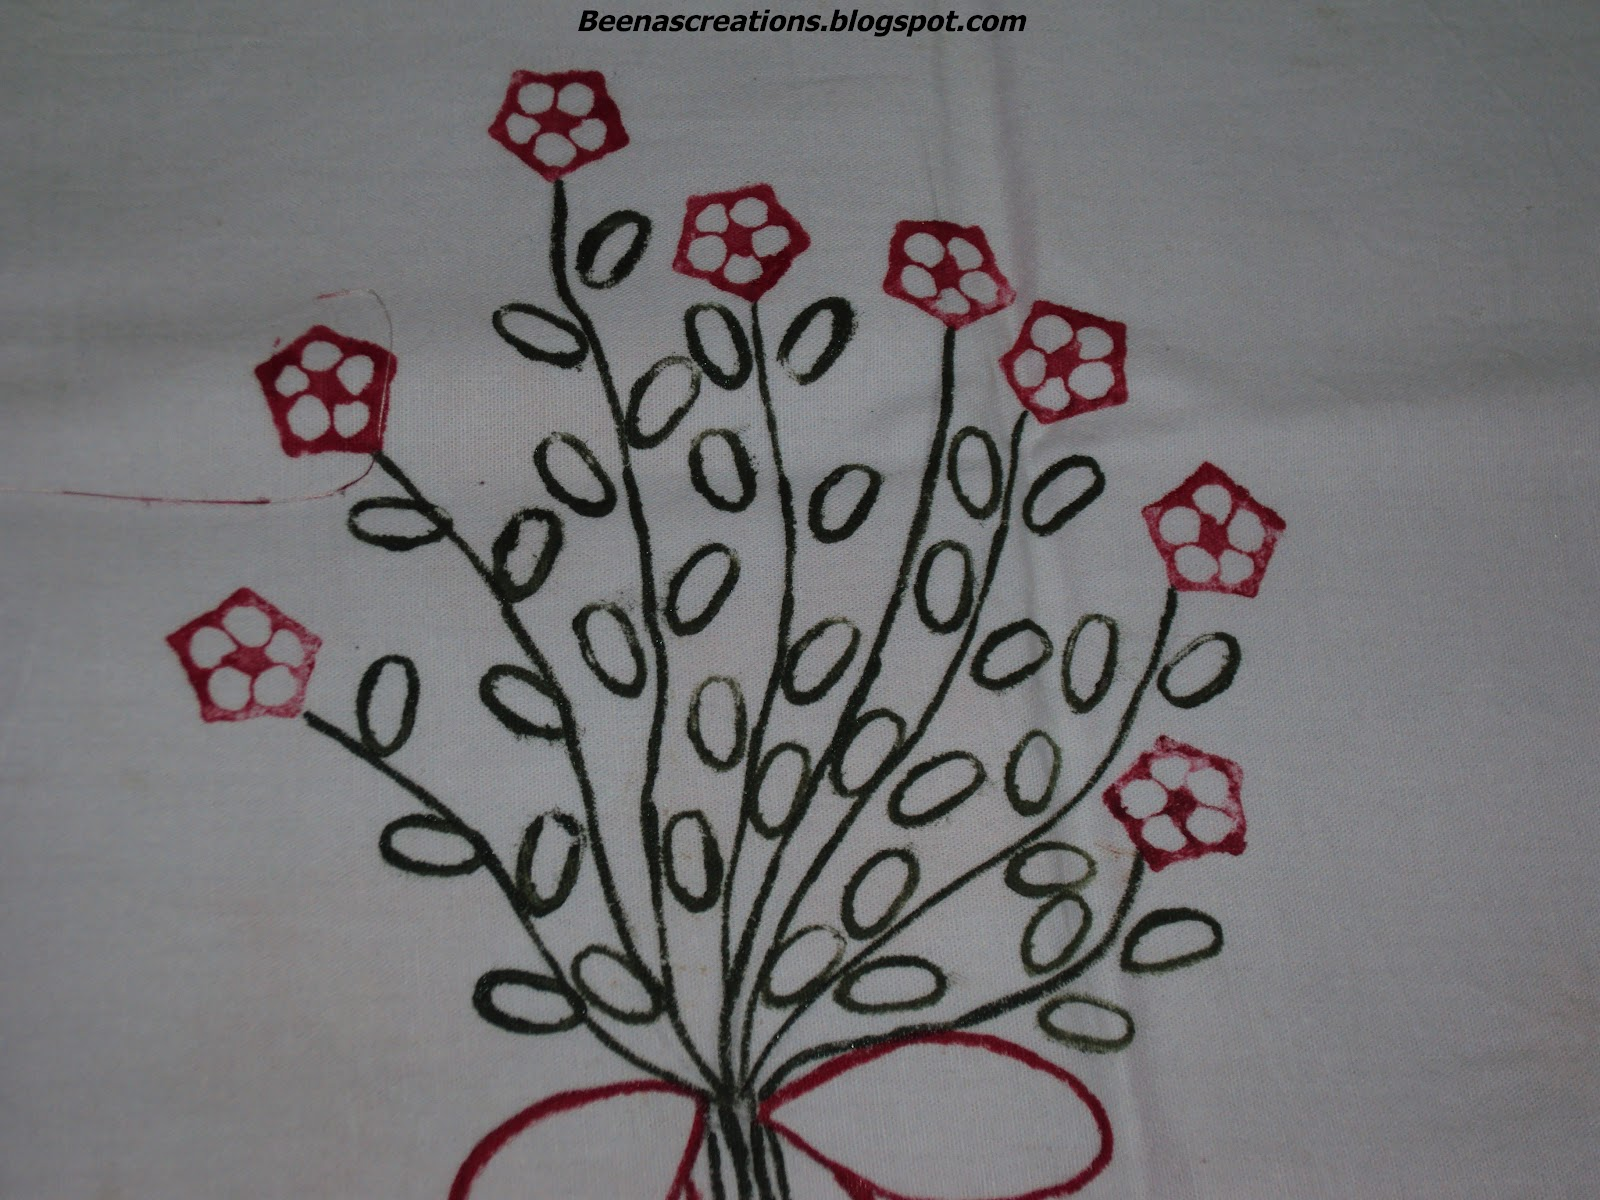 Vegetable Printing http://beenascreations.blogspot.in/2012/05/vegetable-printing-with-fabric-paint.html#!